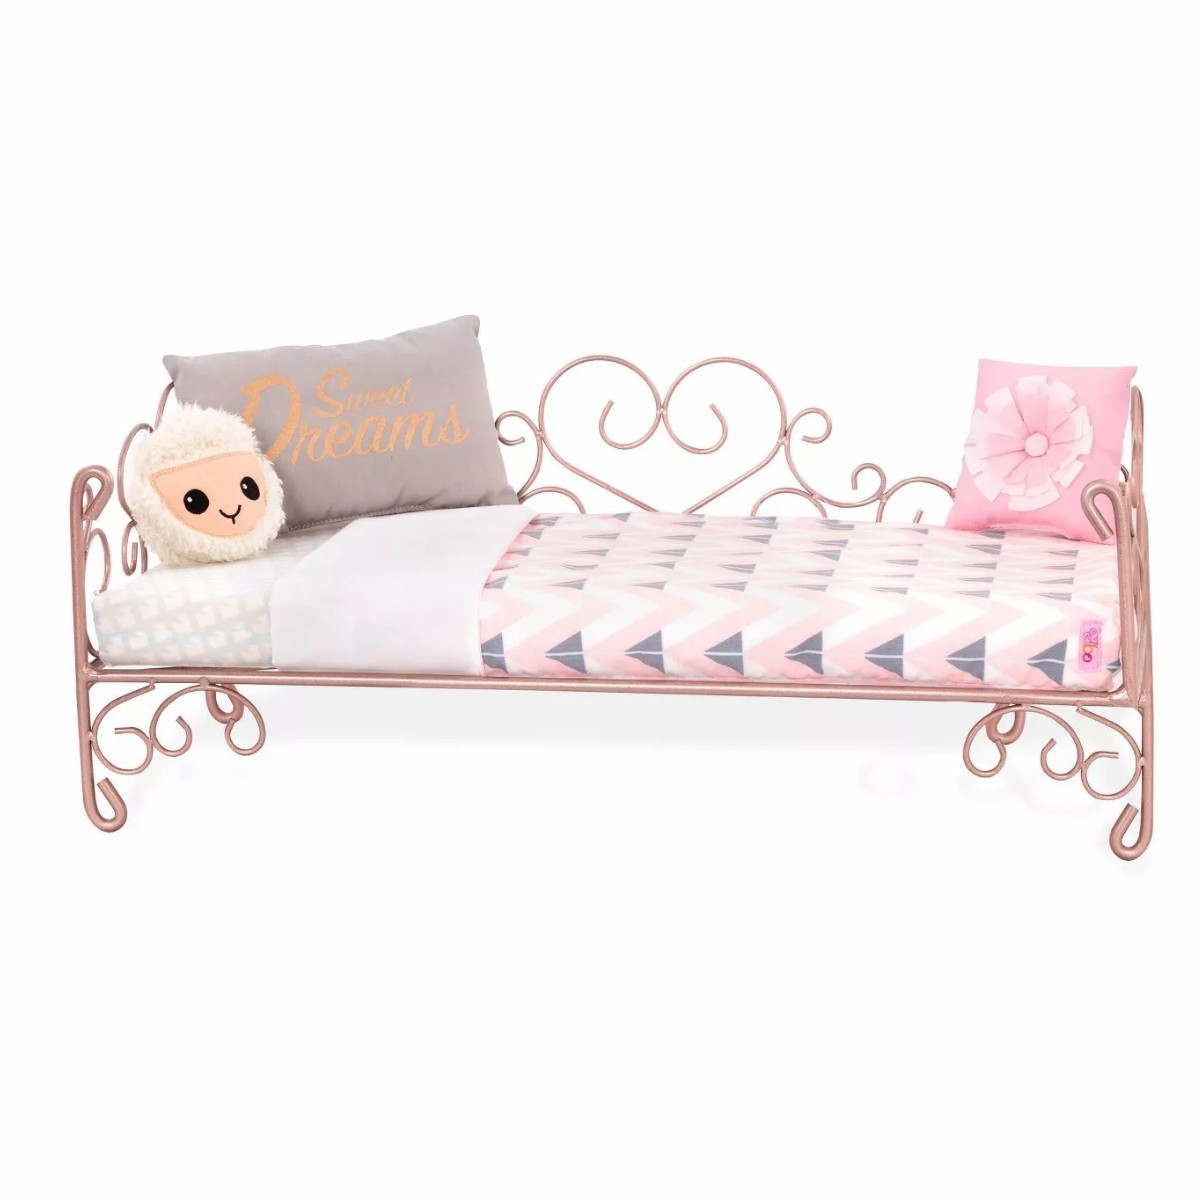 Our Generation - Sweet Dreams Scrollwork Bed (737879)